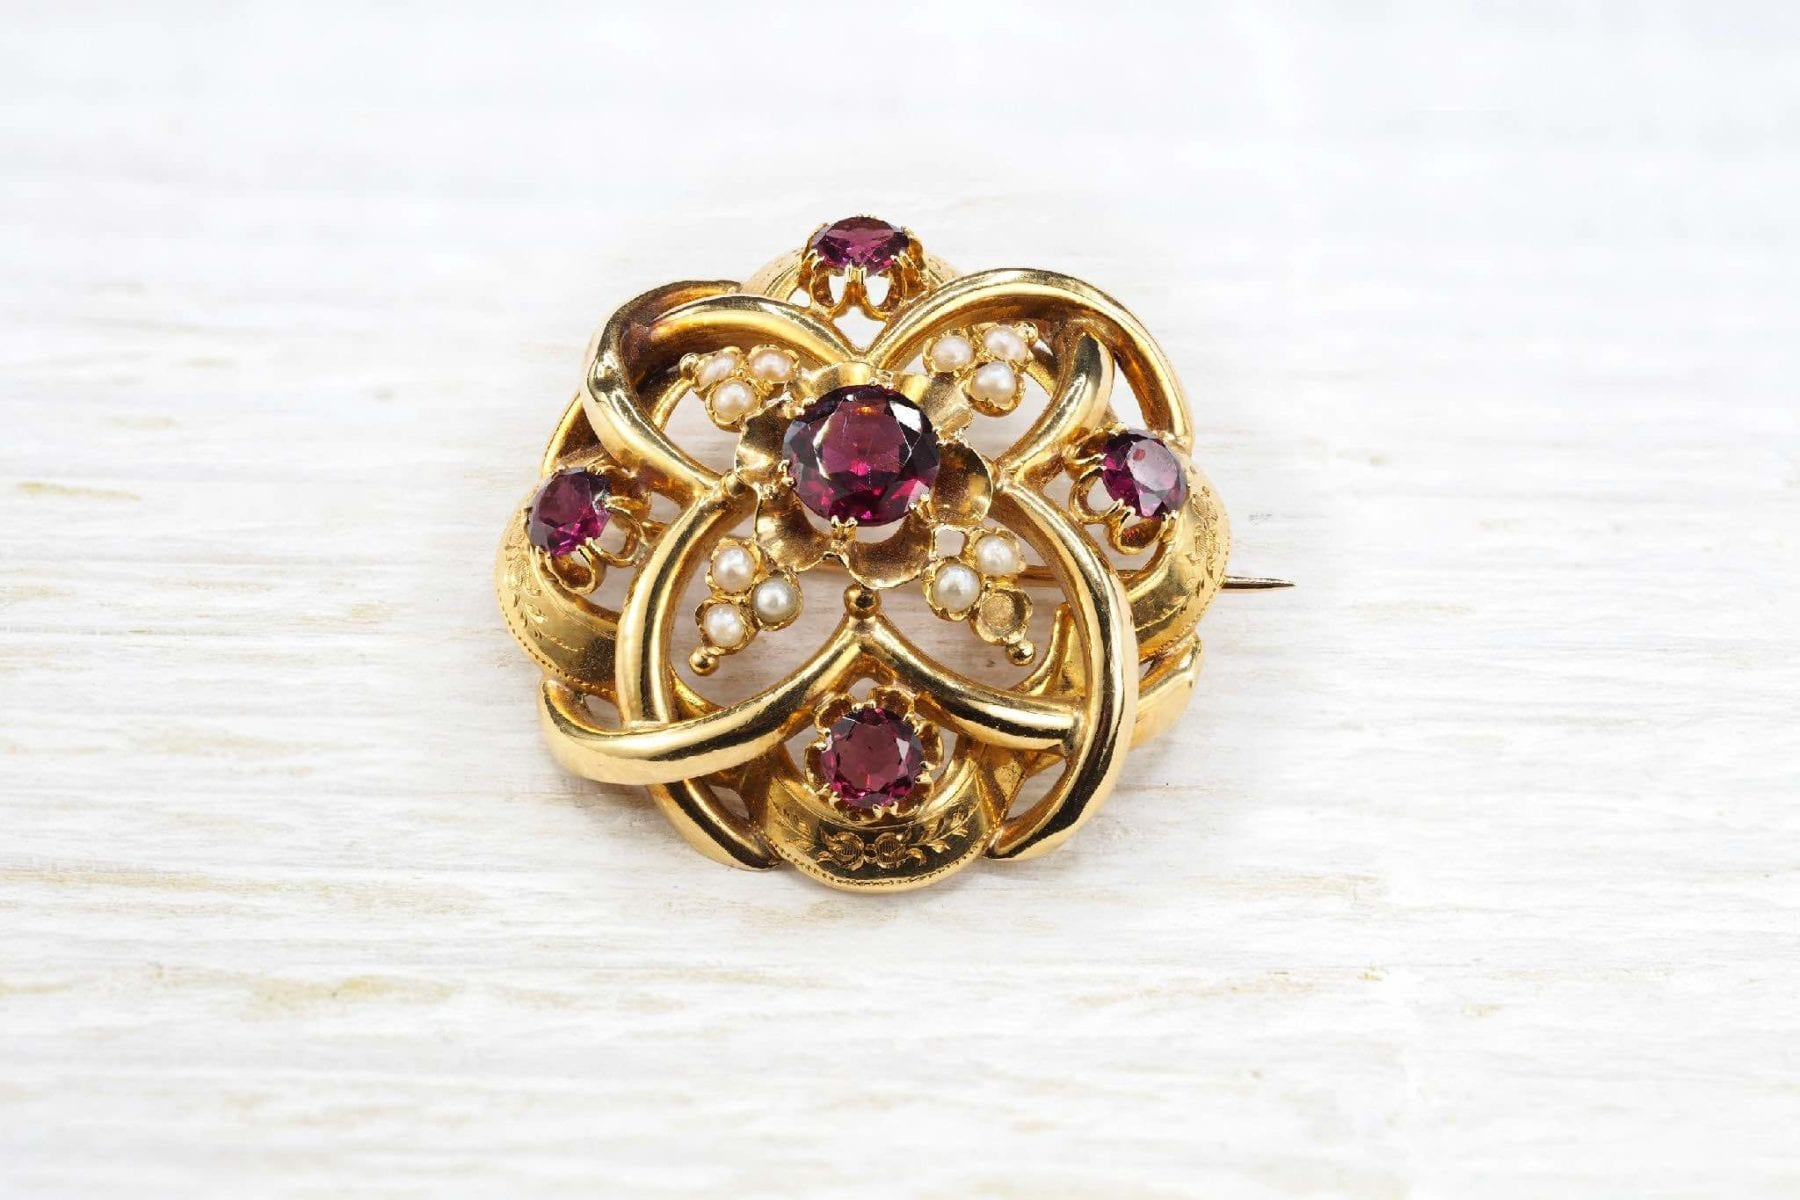 19th century garnets brooch